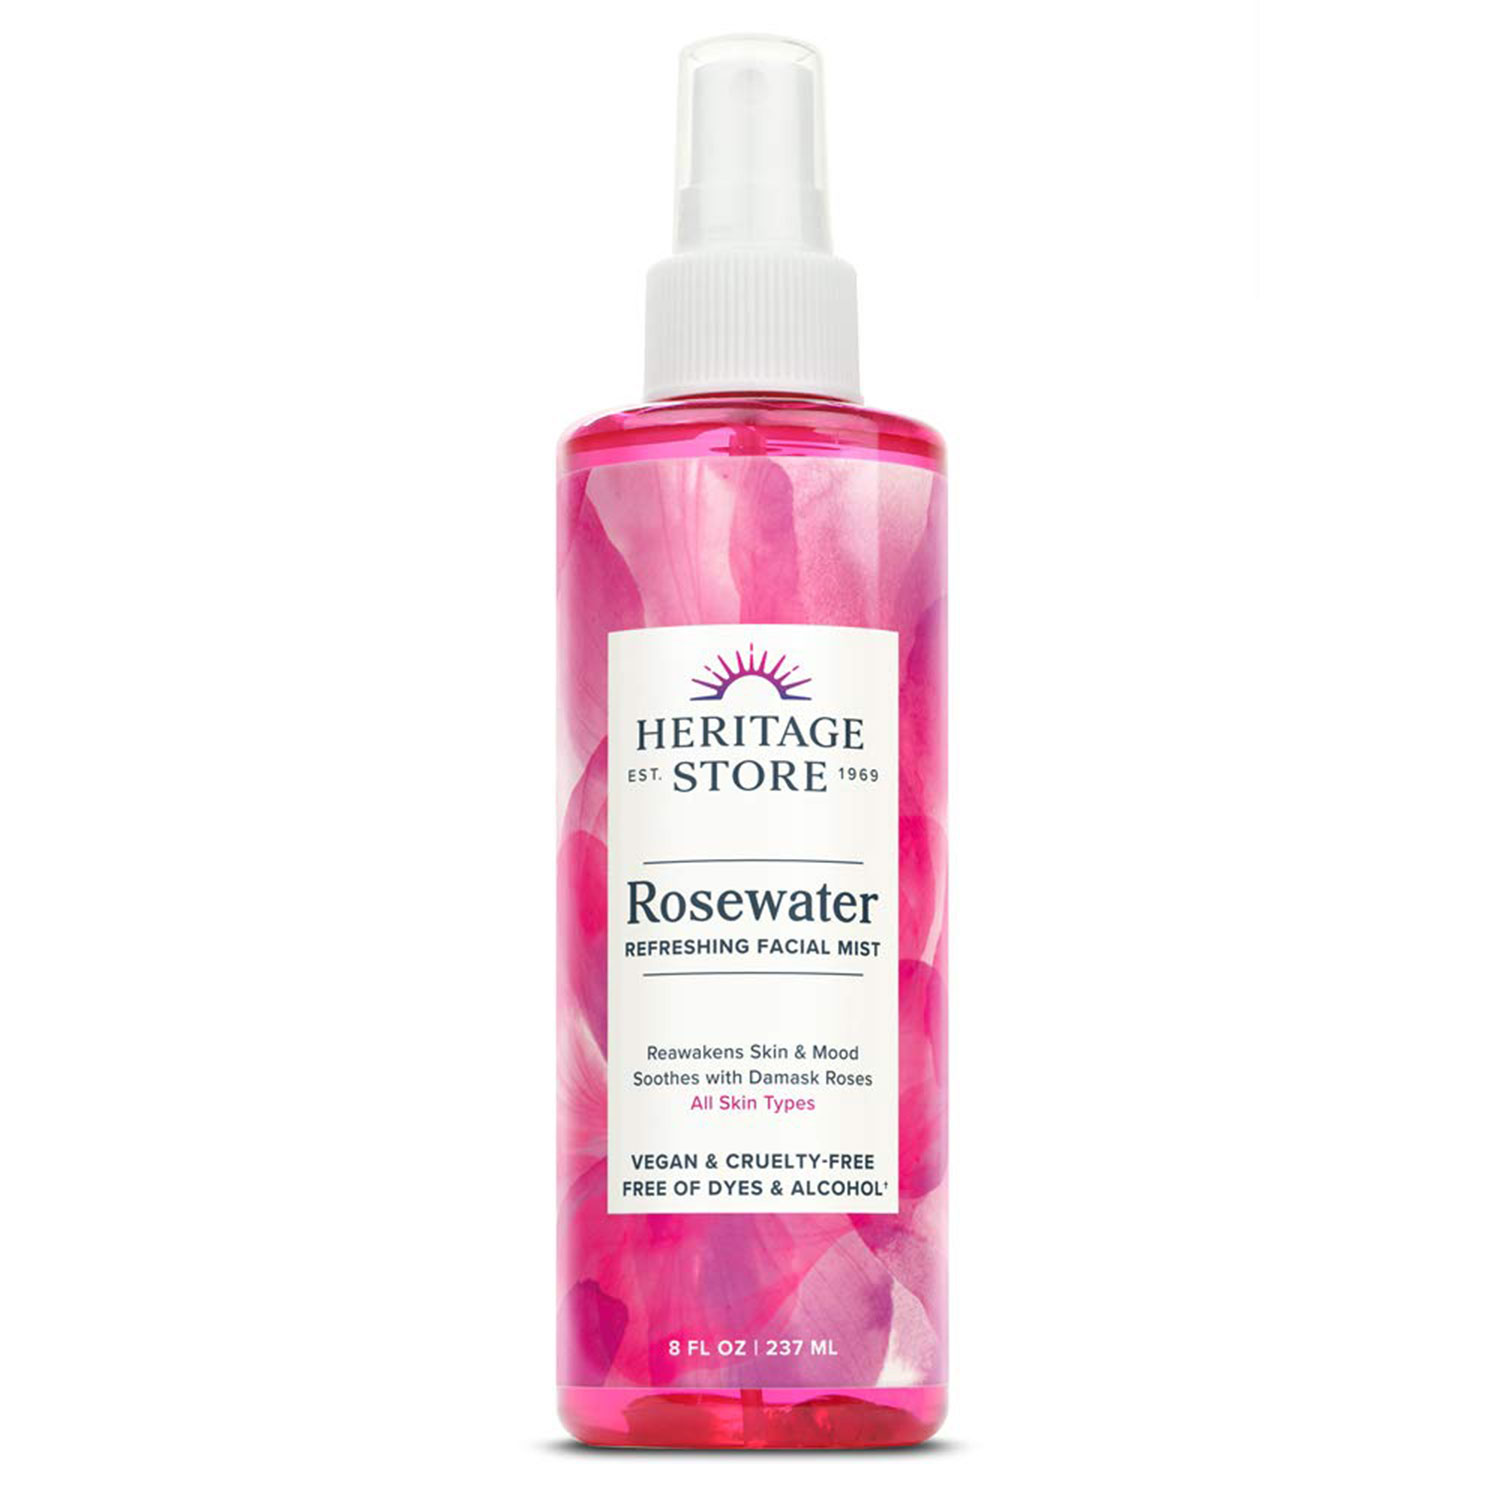 Heritage Store Rosewater Refreshing Facial Mist for Glowing Skin